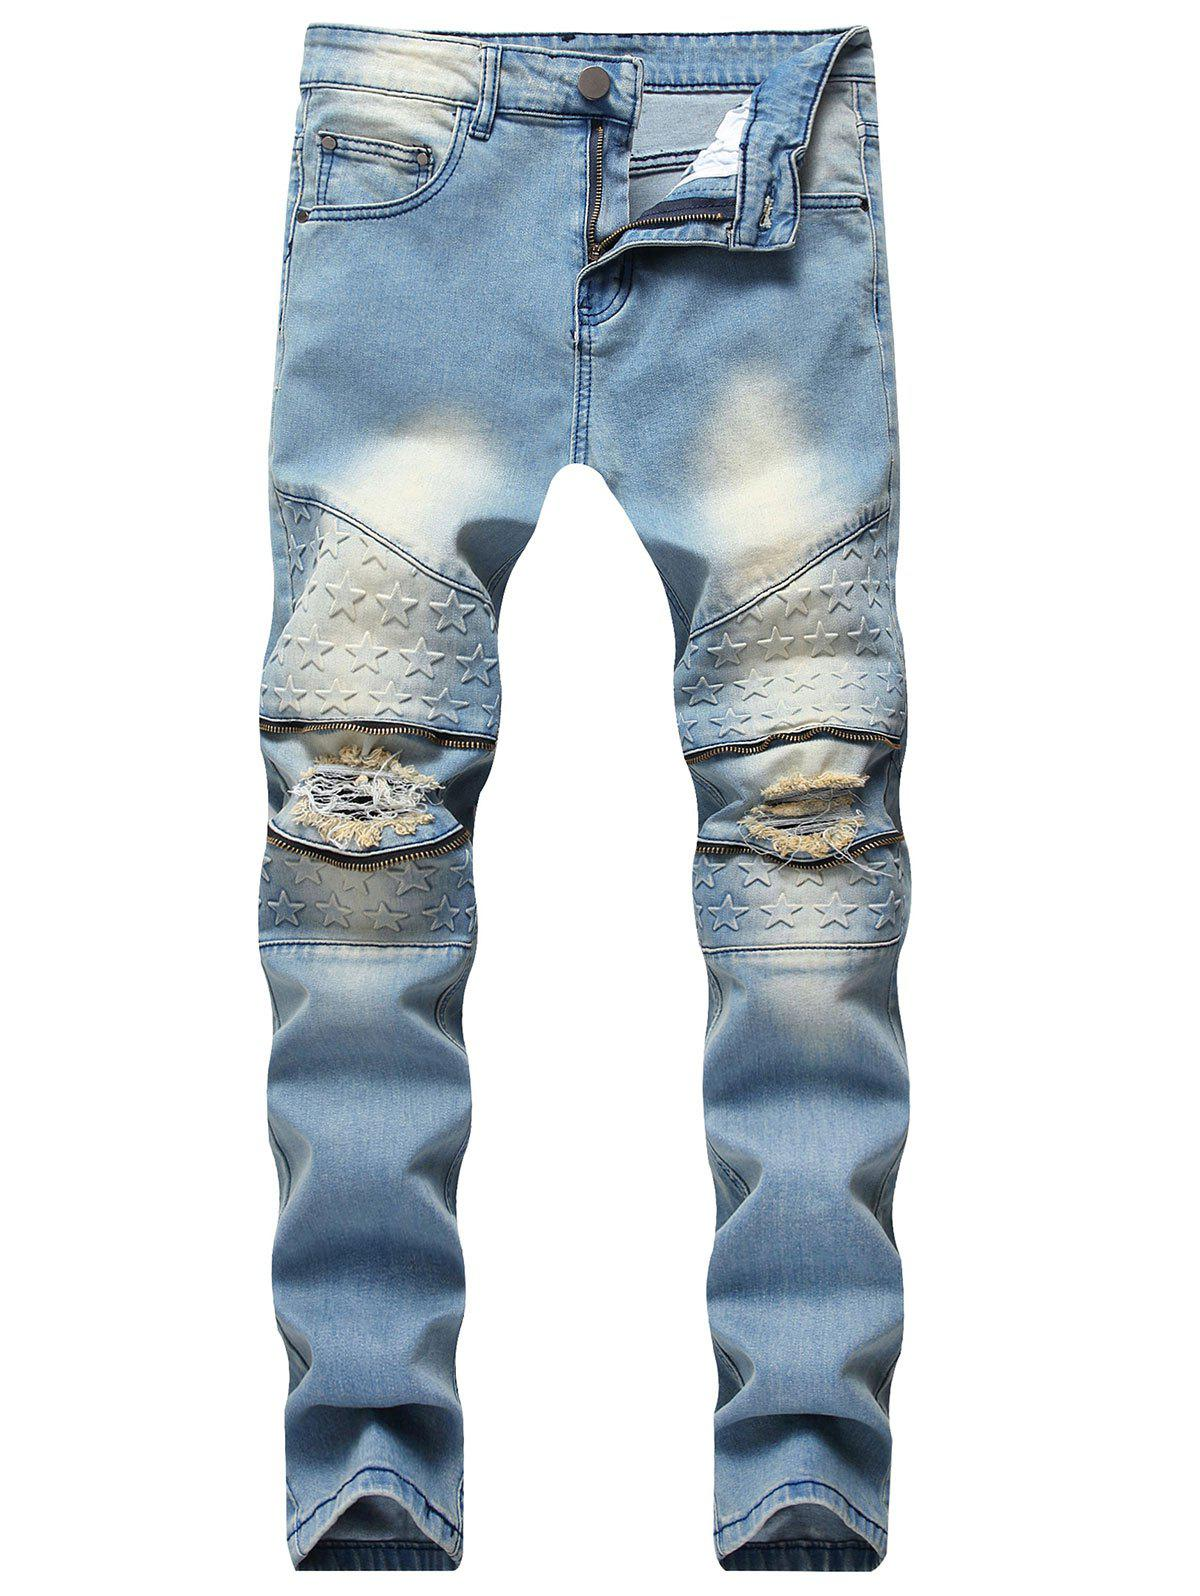 Fashion Five Pointed Stars Raised Zippers Ripped Jeans